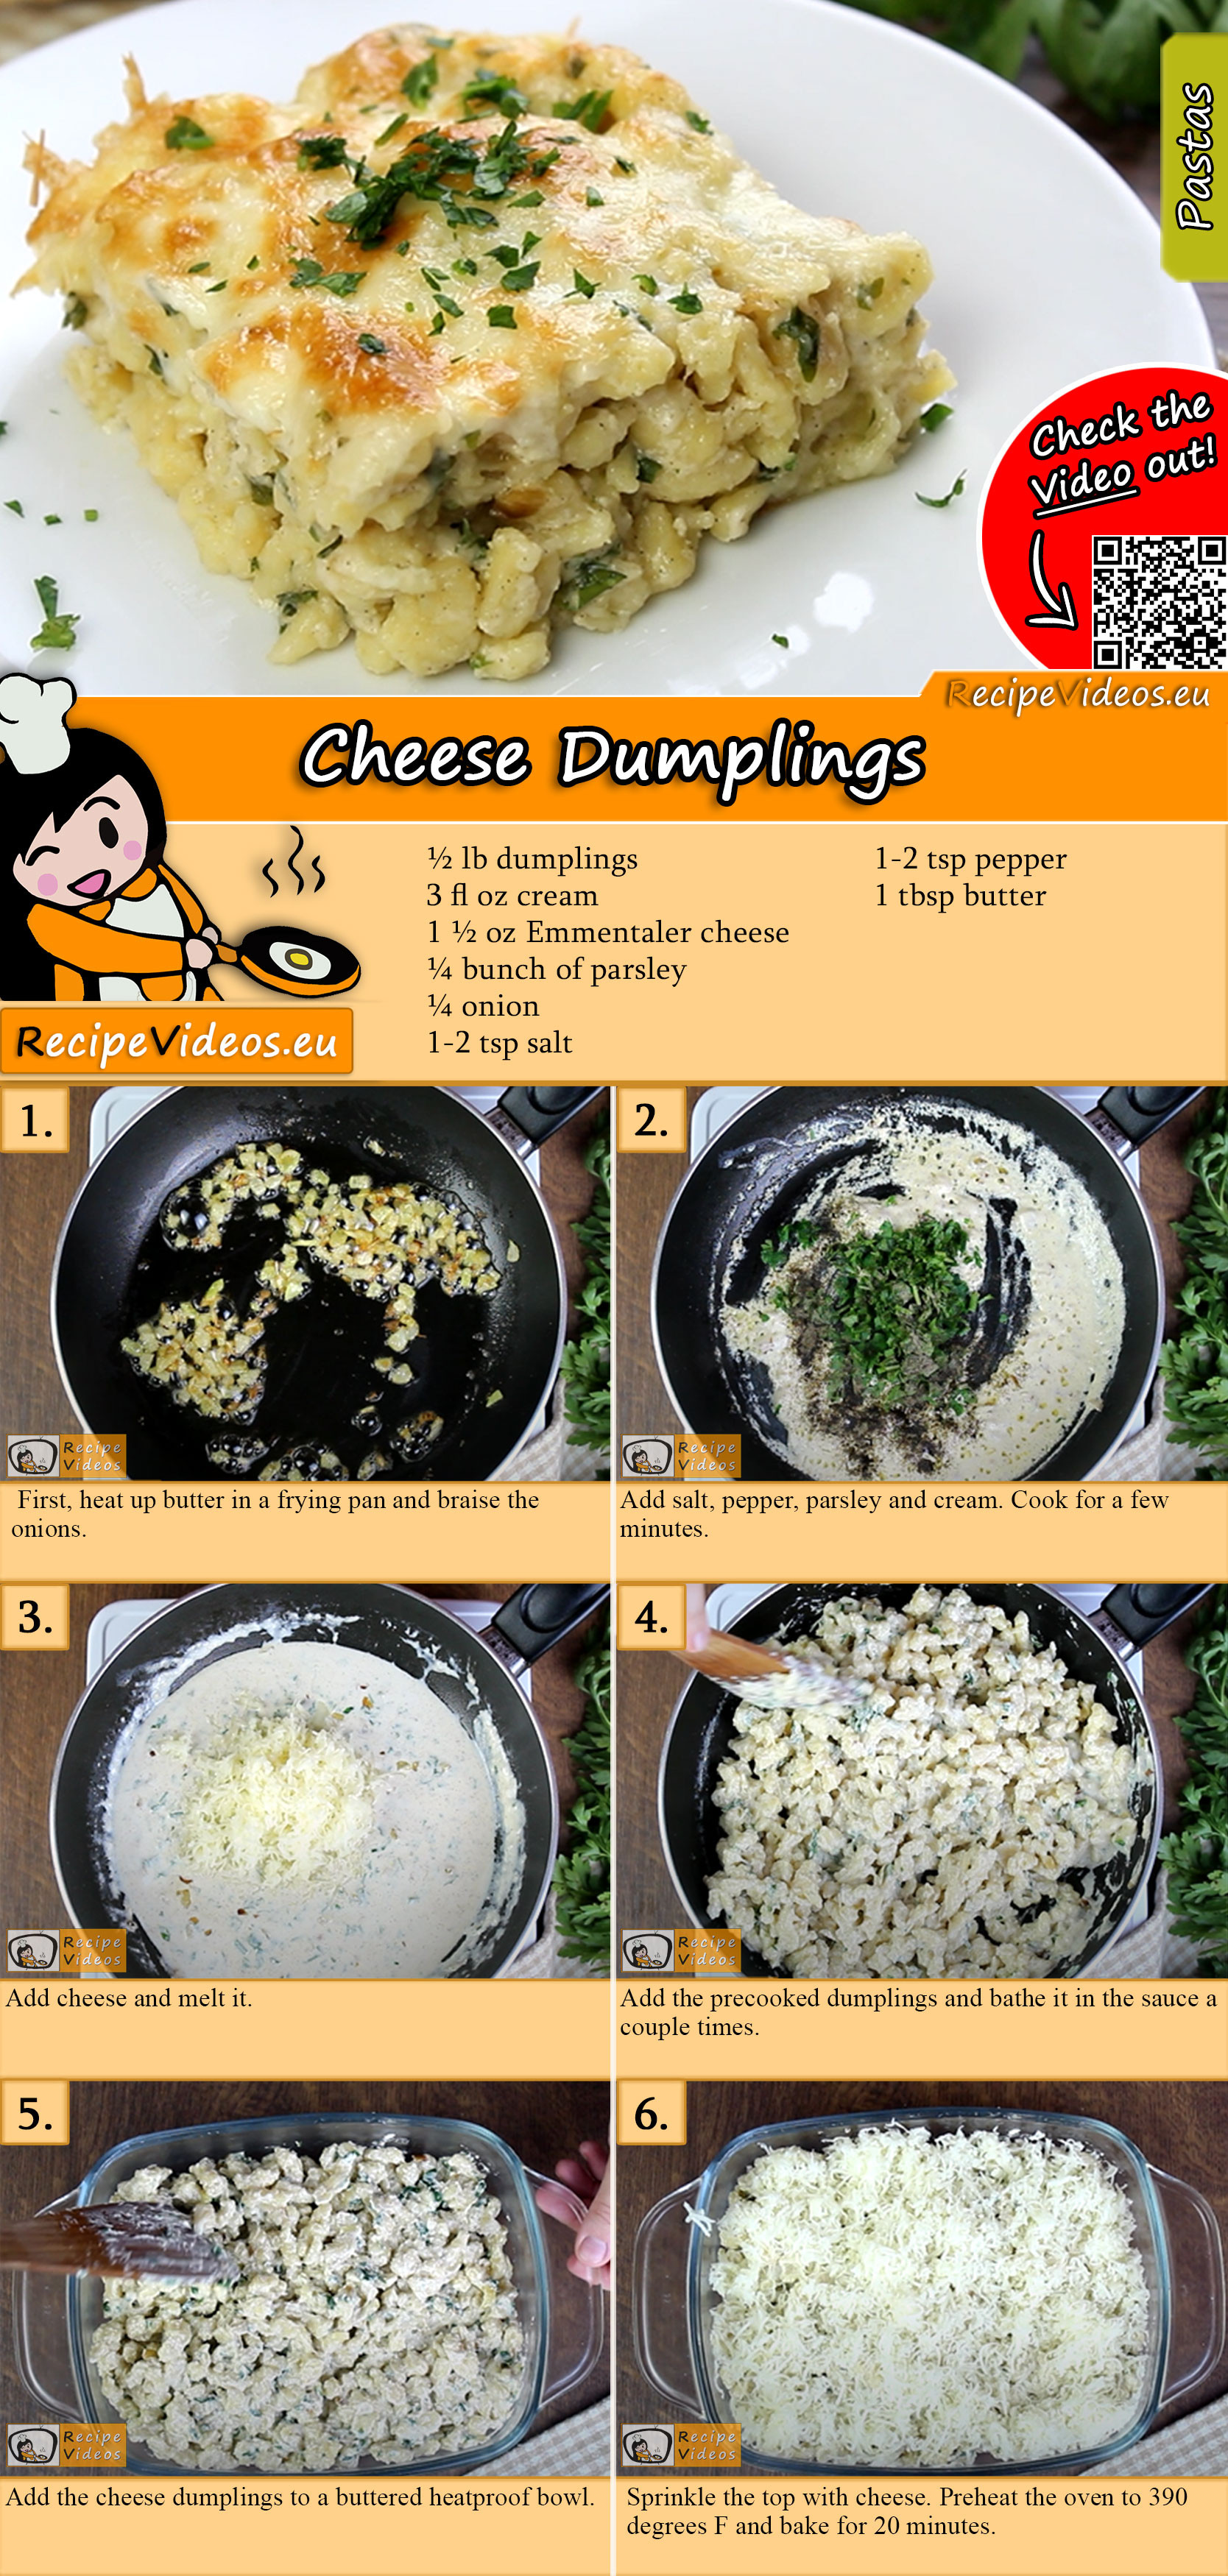 Cheese dumplings recipe with video